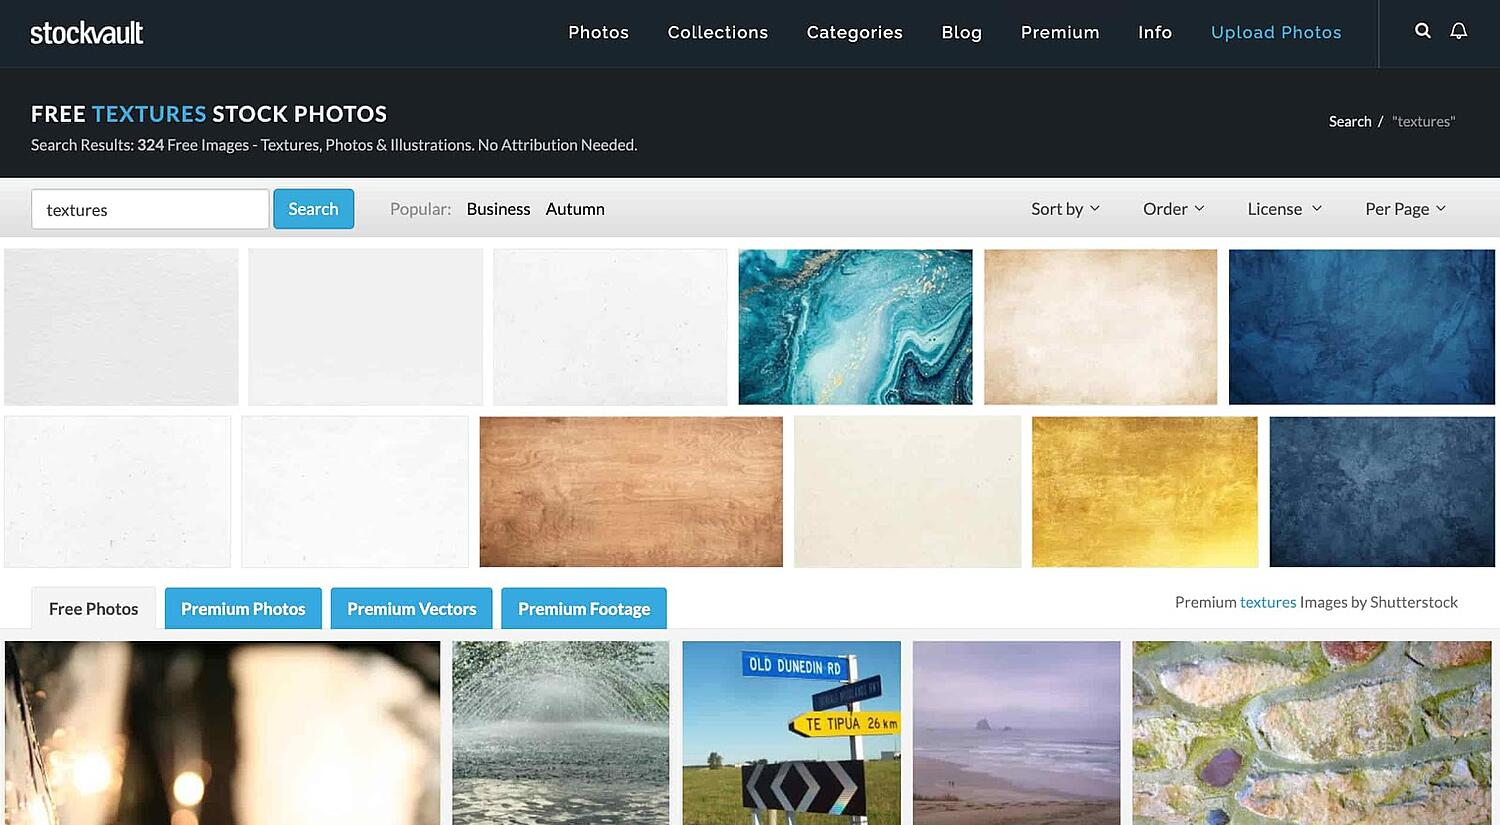 homepage for the web textures resource Stockvault